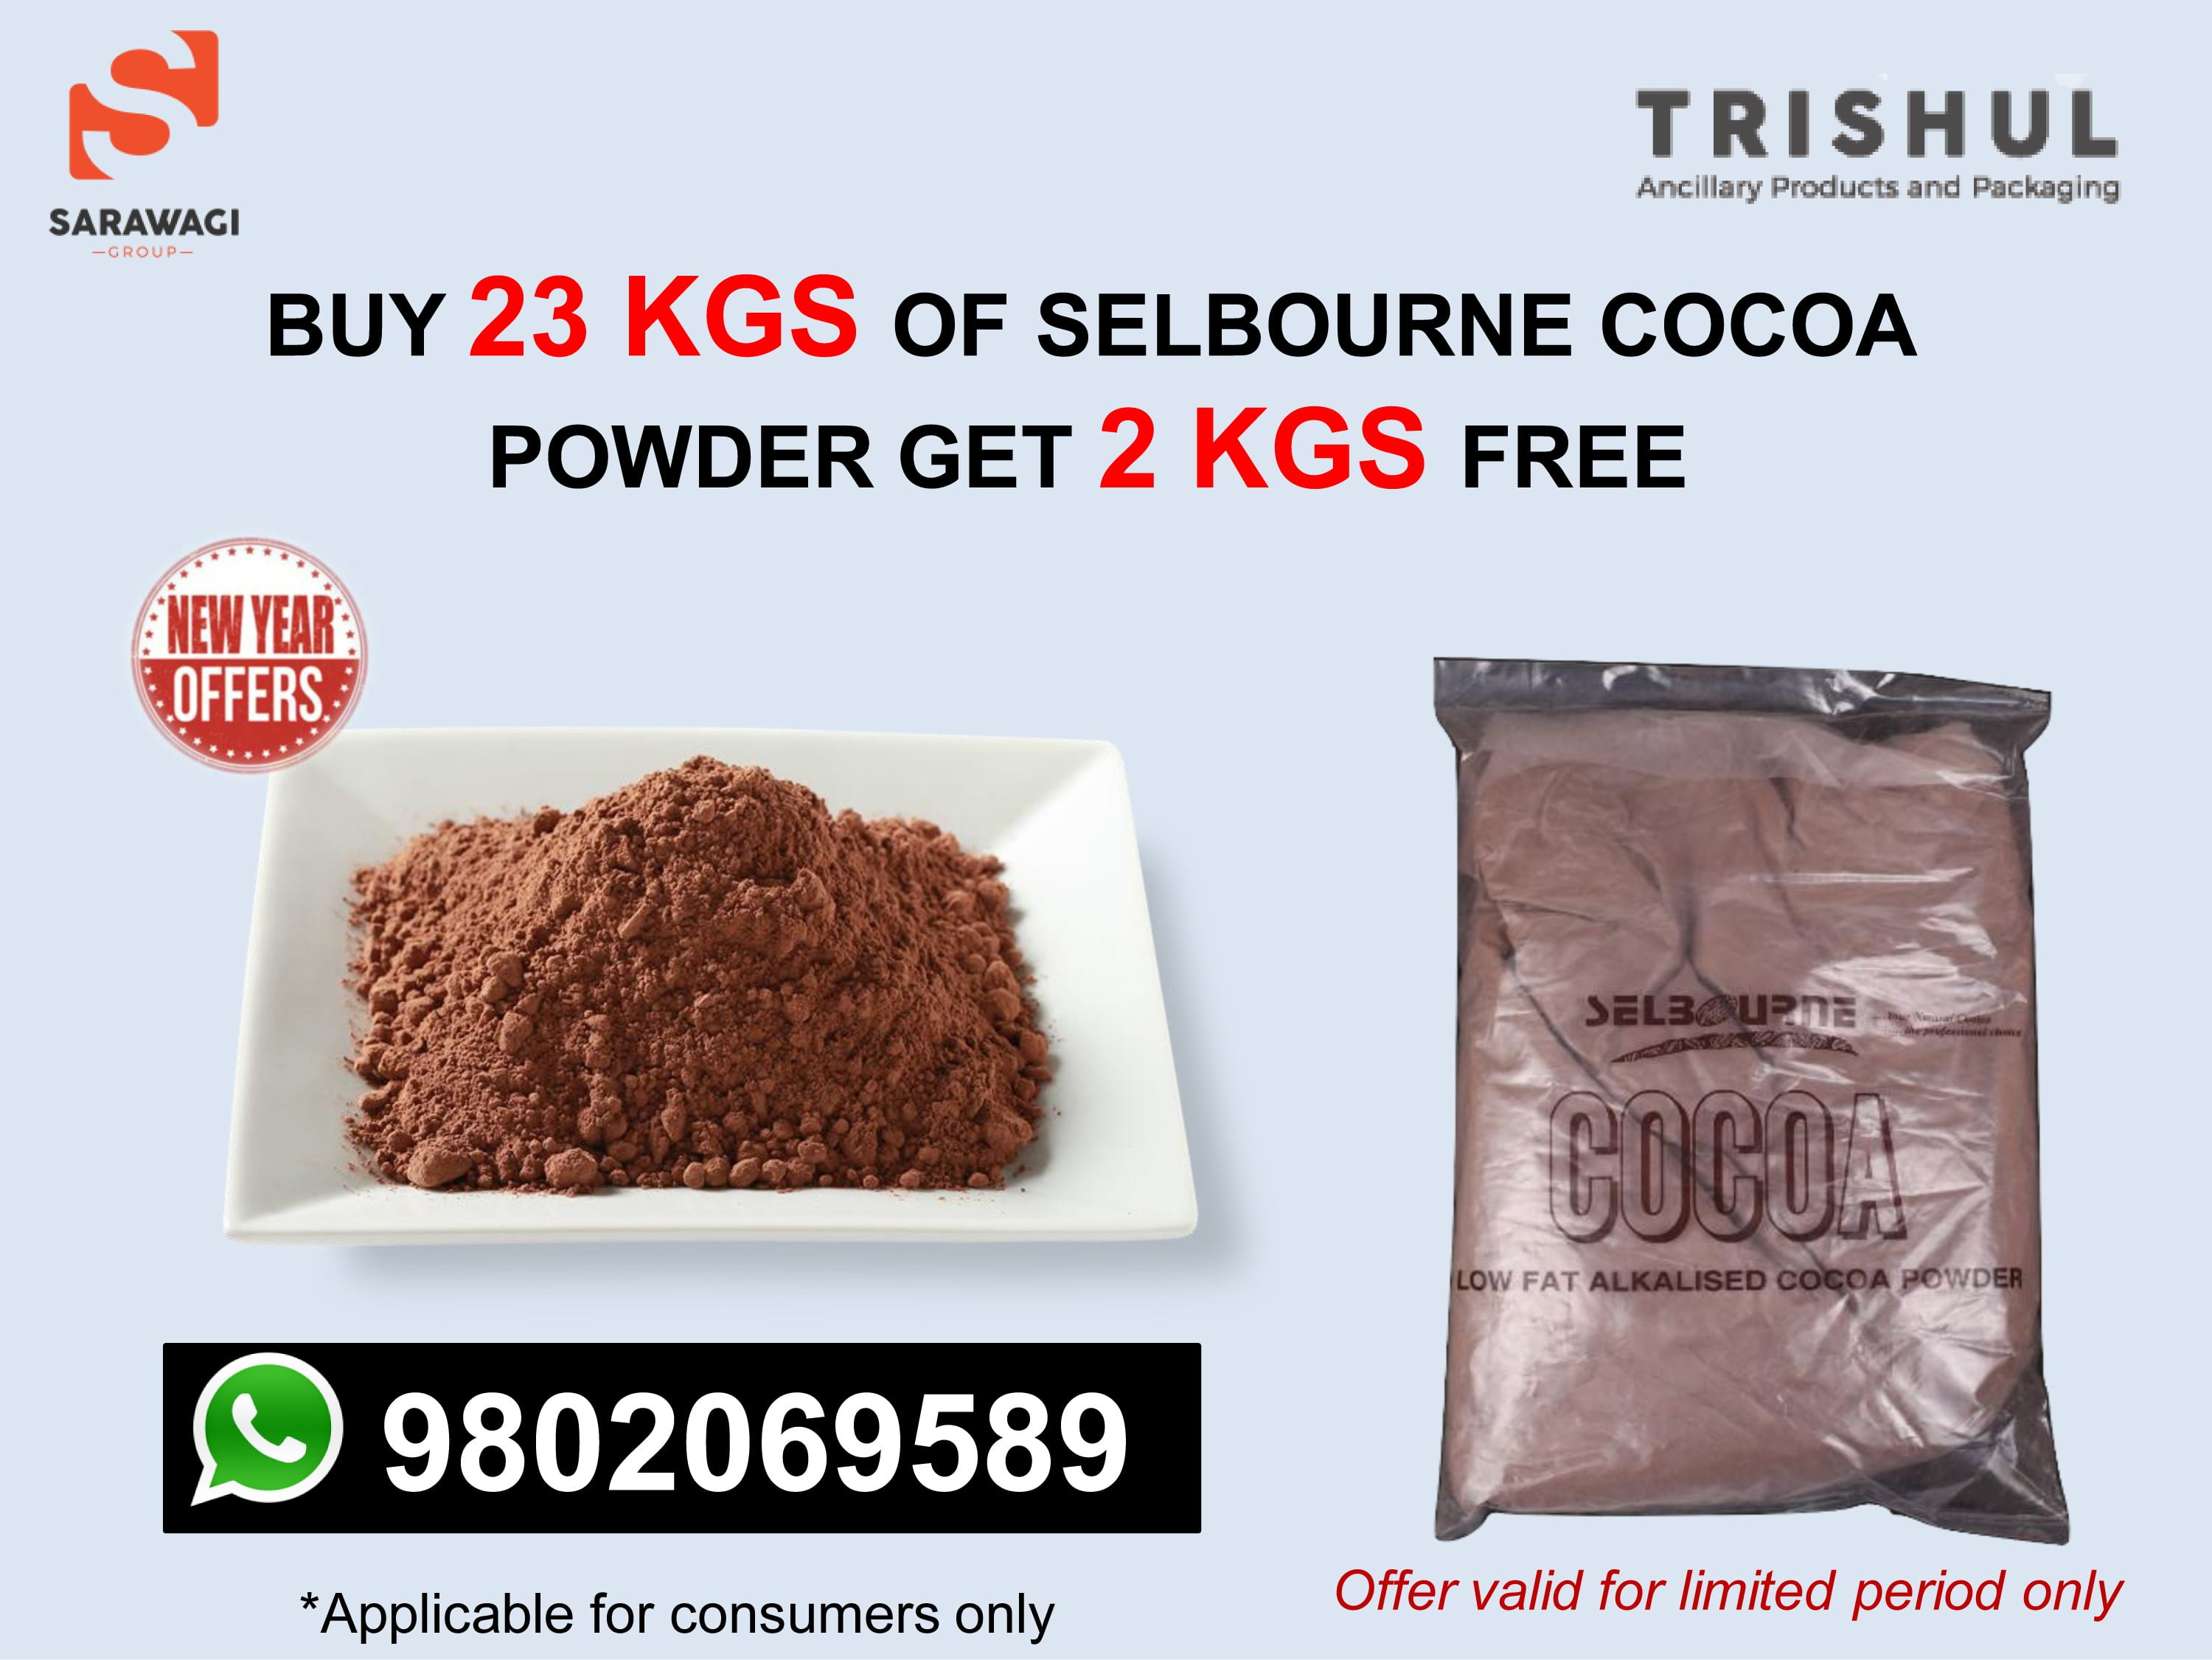 Selbourne Cocoa Powder (Dark Brown) Image